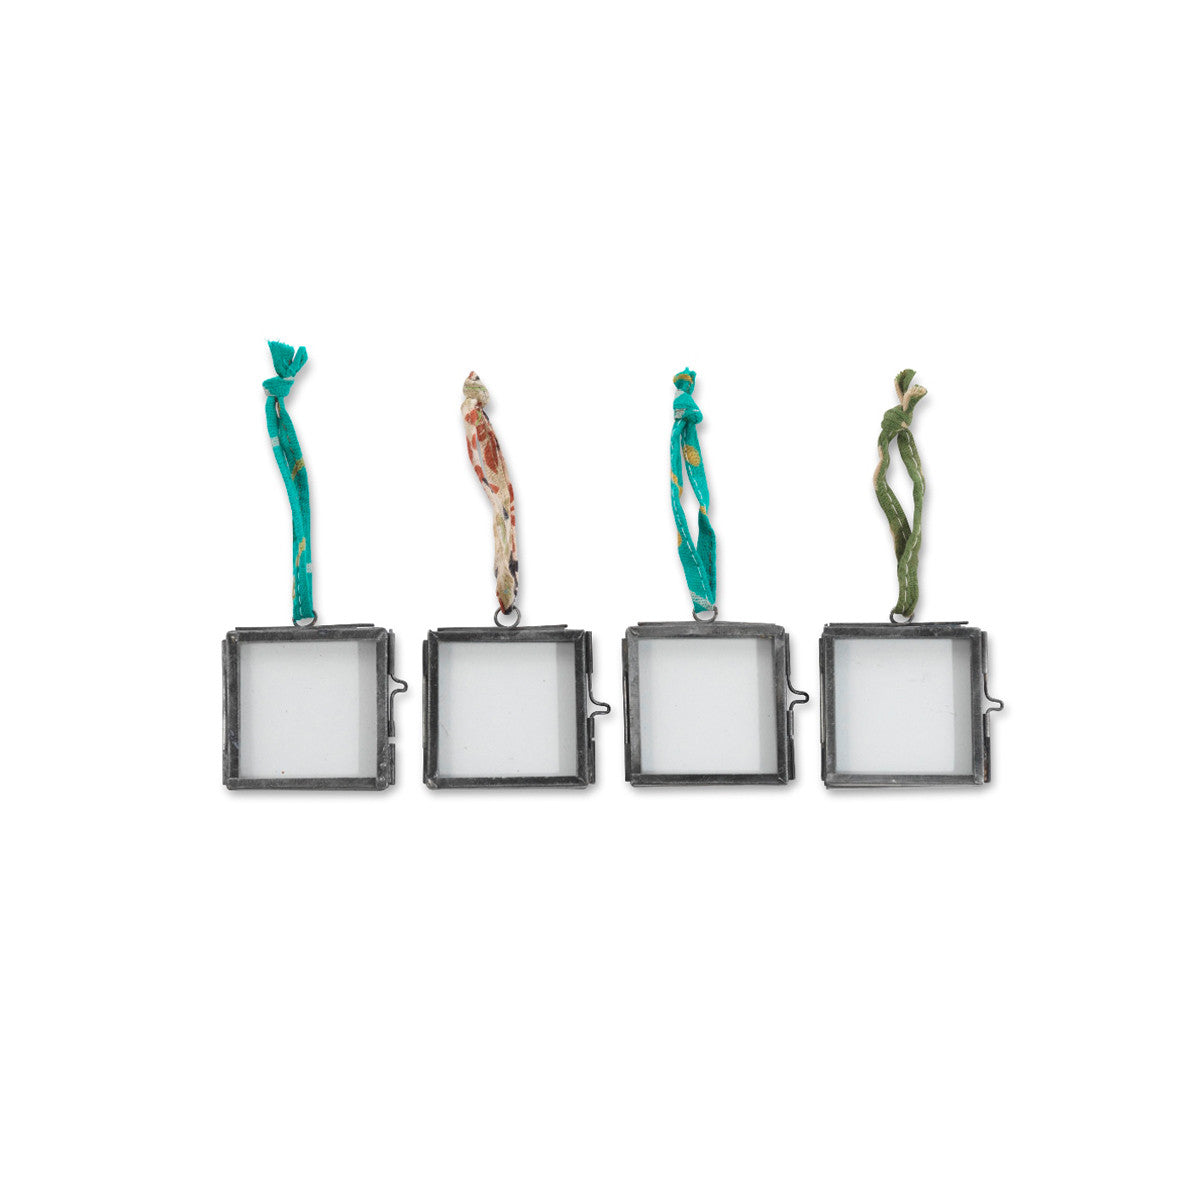 Bip - Mini Frames Hanging Set of 4